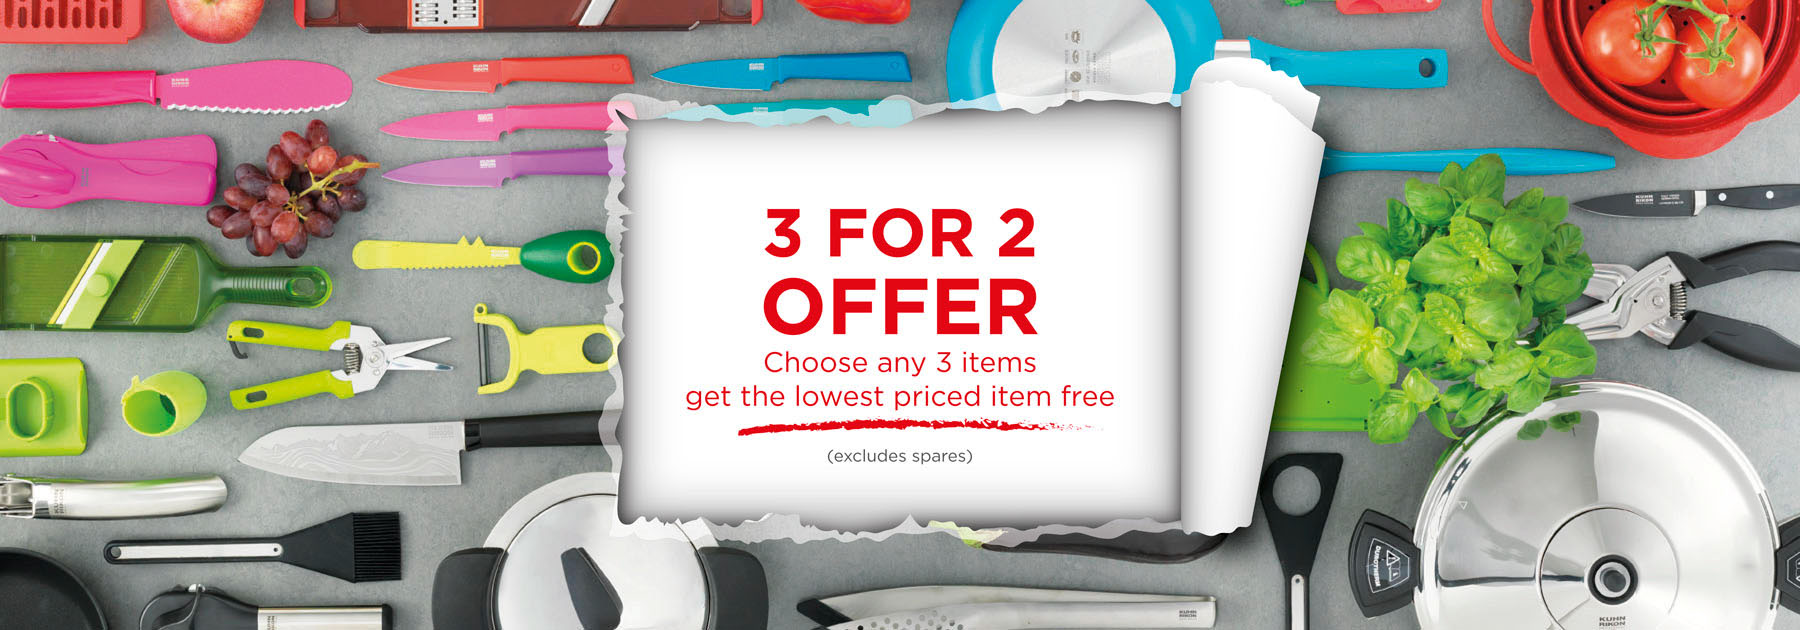 save, discounts, offers, promotions,